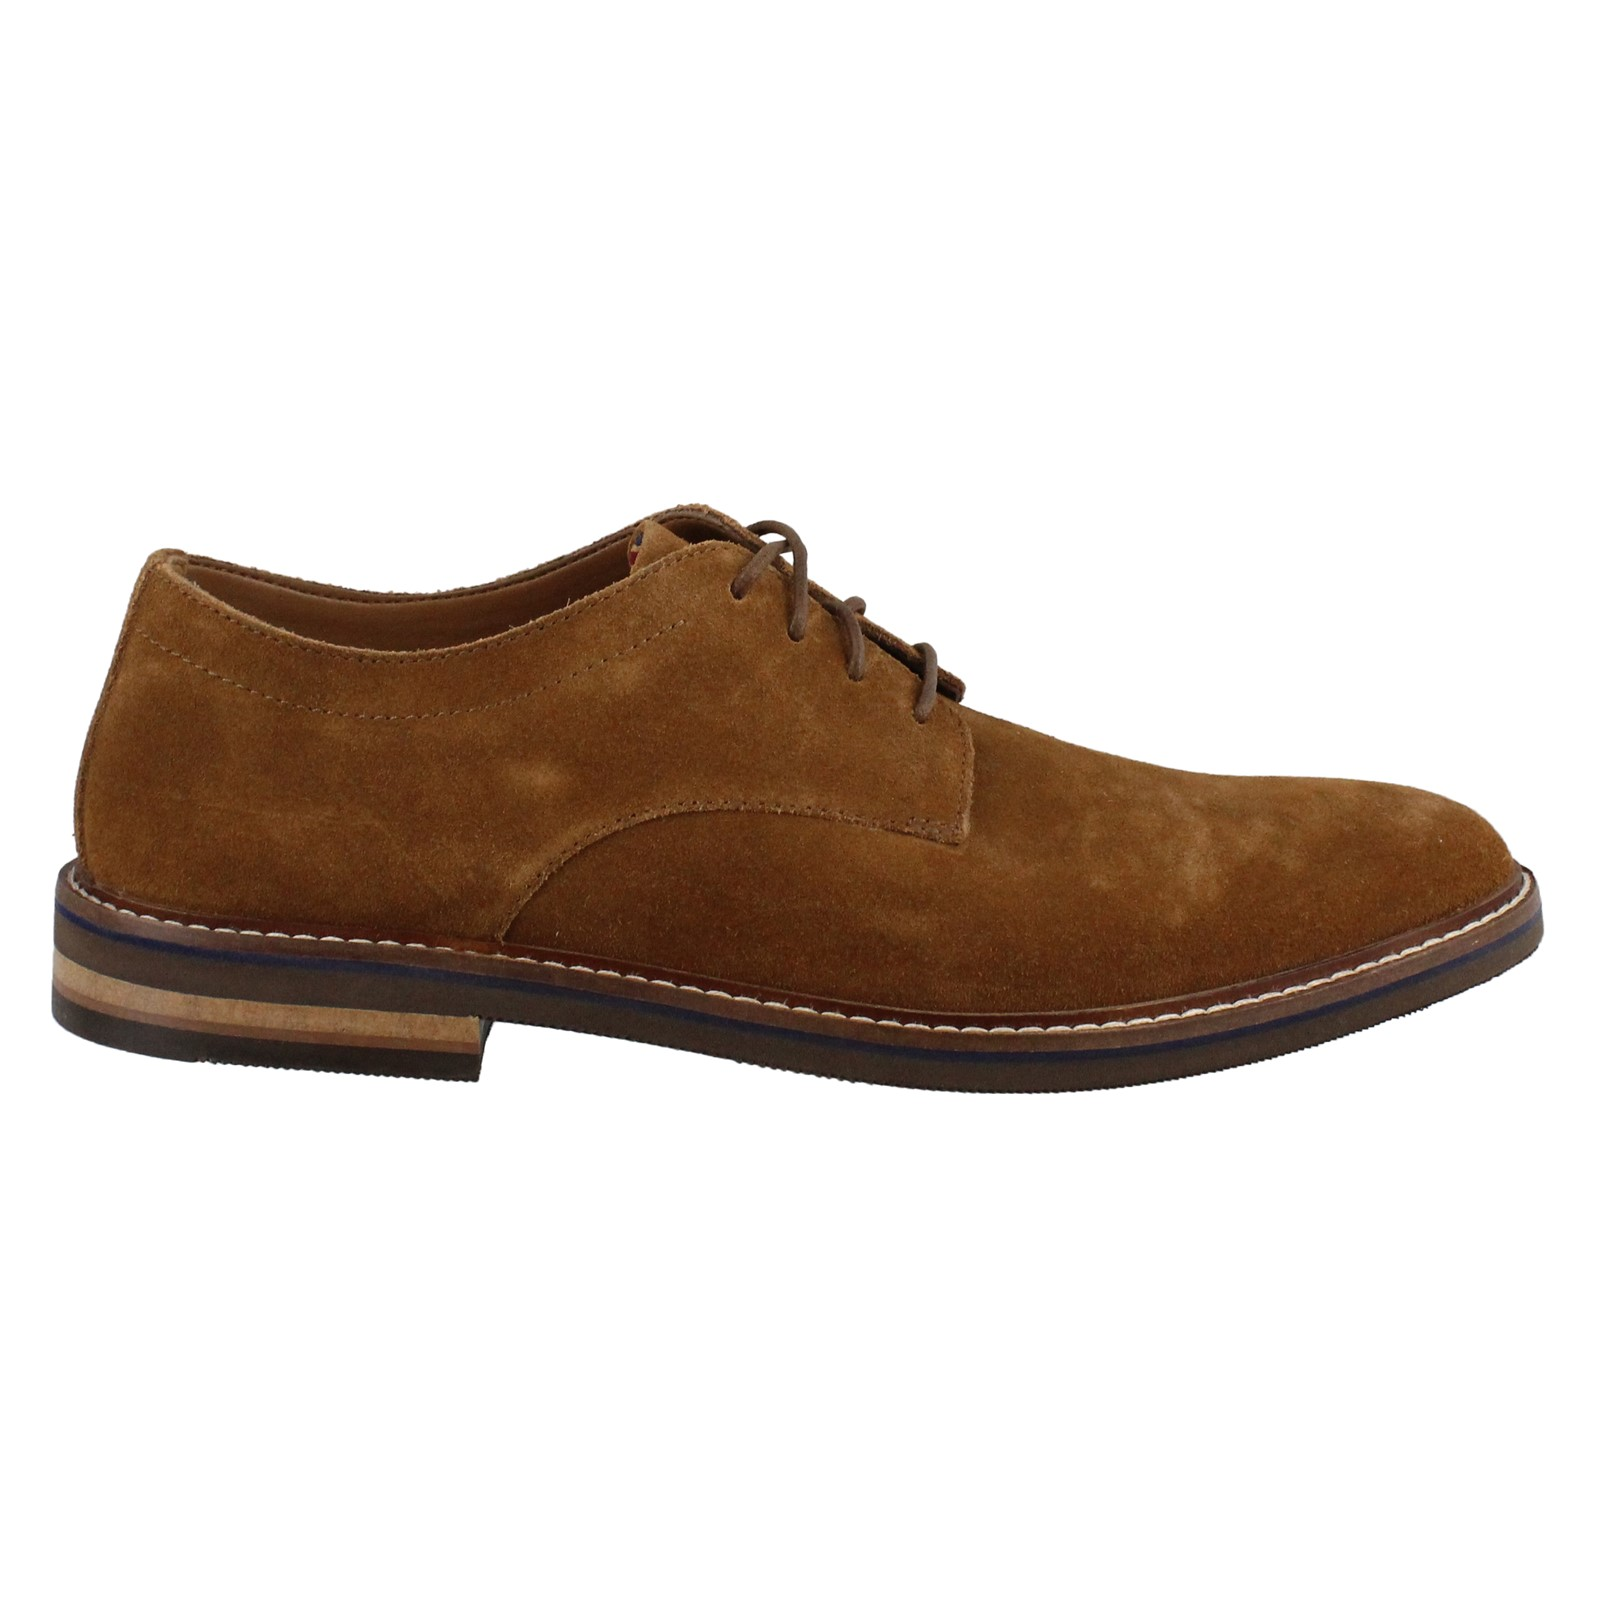 Men's Bostonian, Dezmin Plain Lace up Shoes